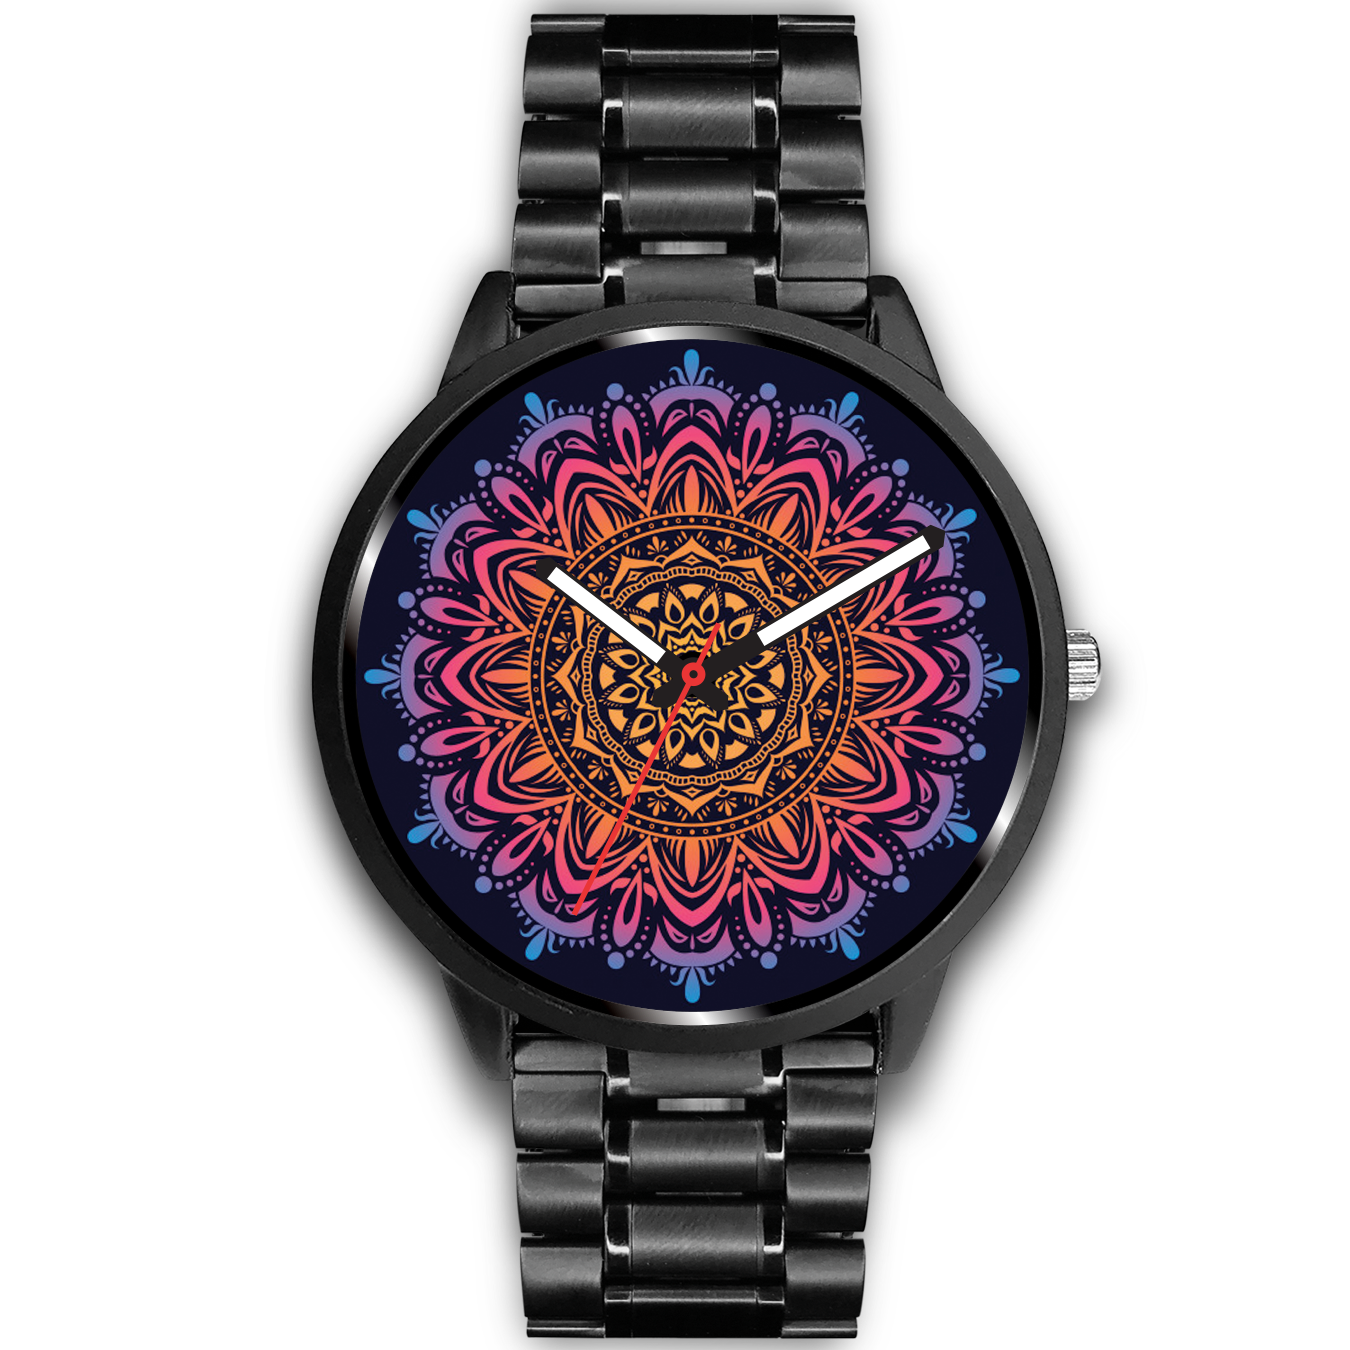 Flameful Rise Mandala Watch